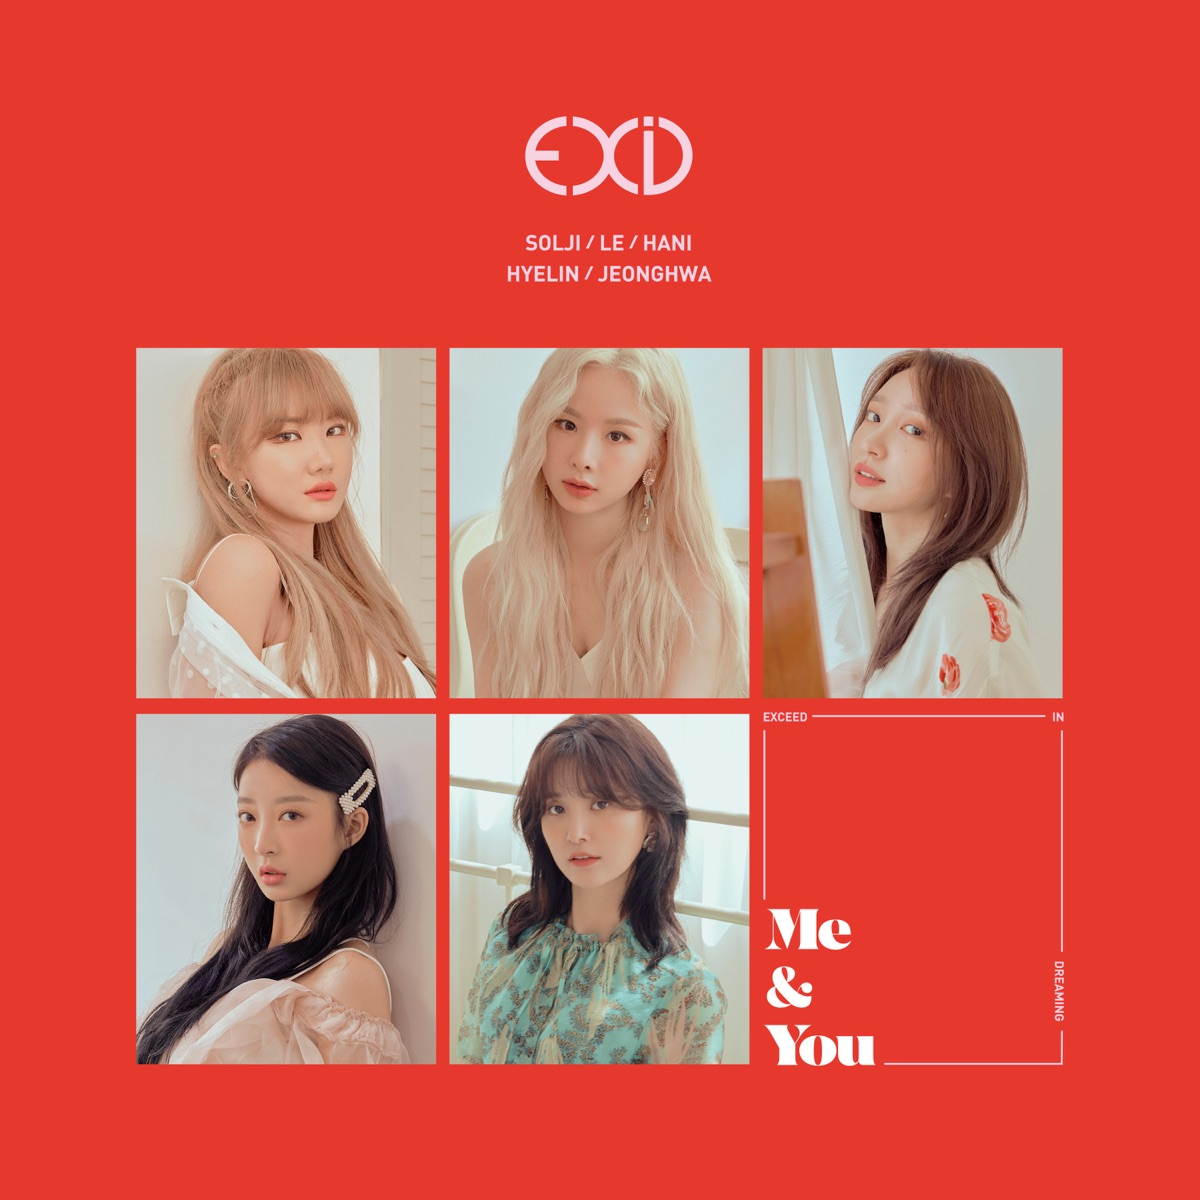 WE EXID CD cover